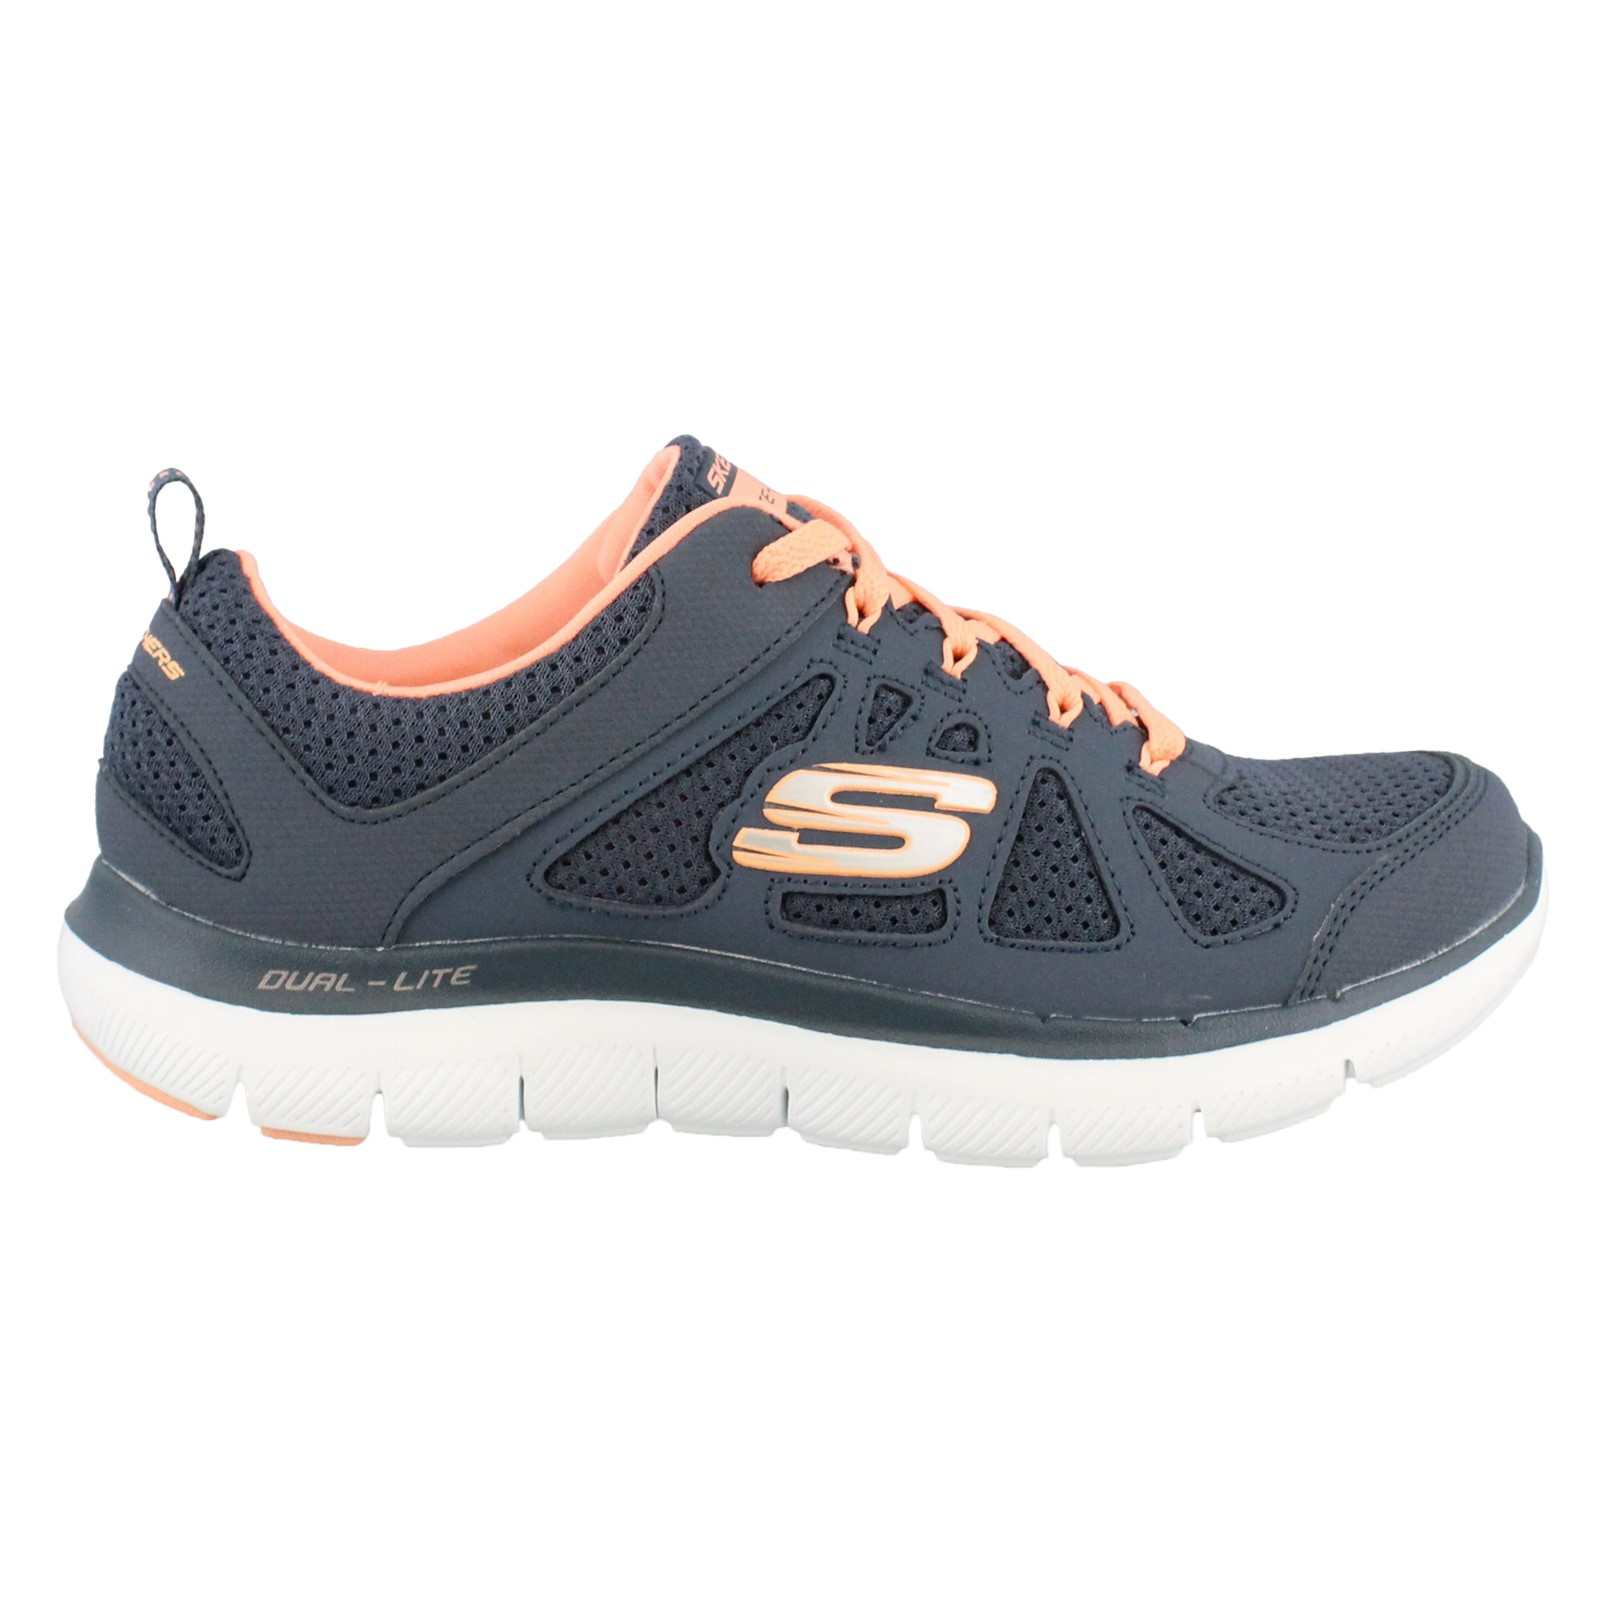 Women's Skechers, Simplistic Running Shoes